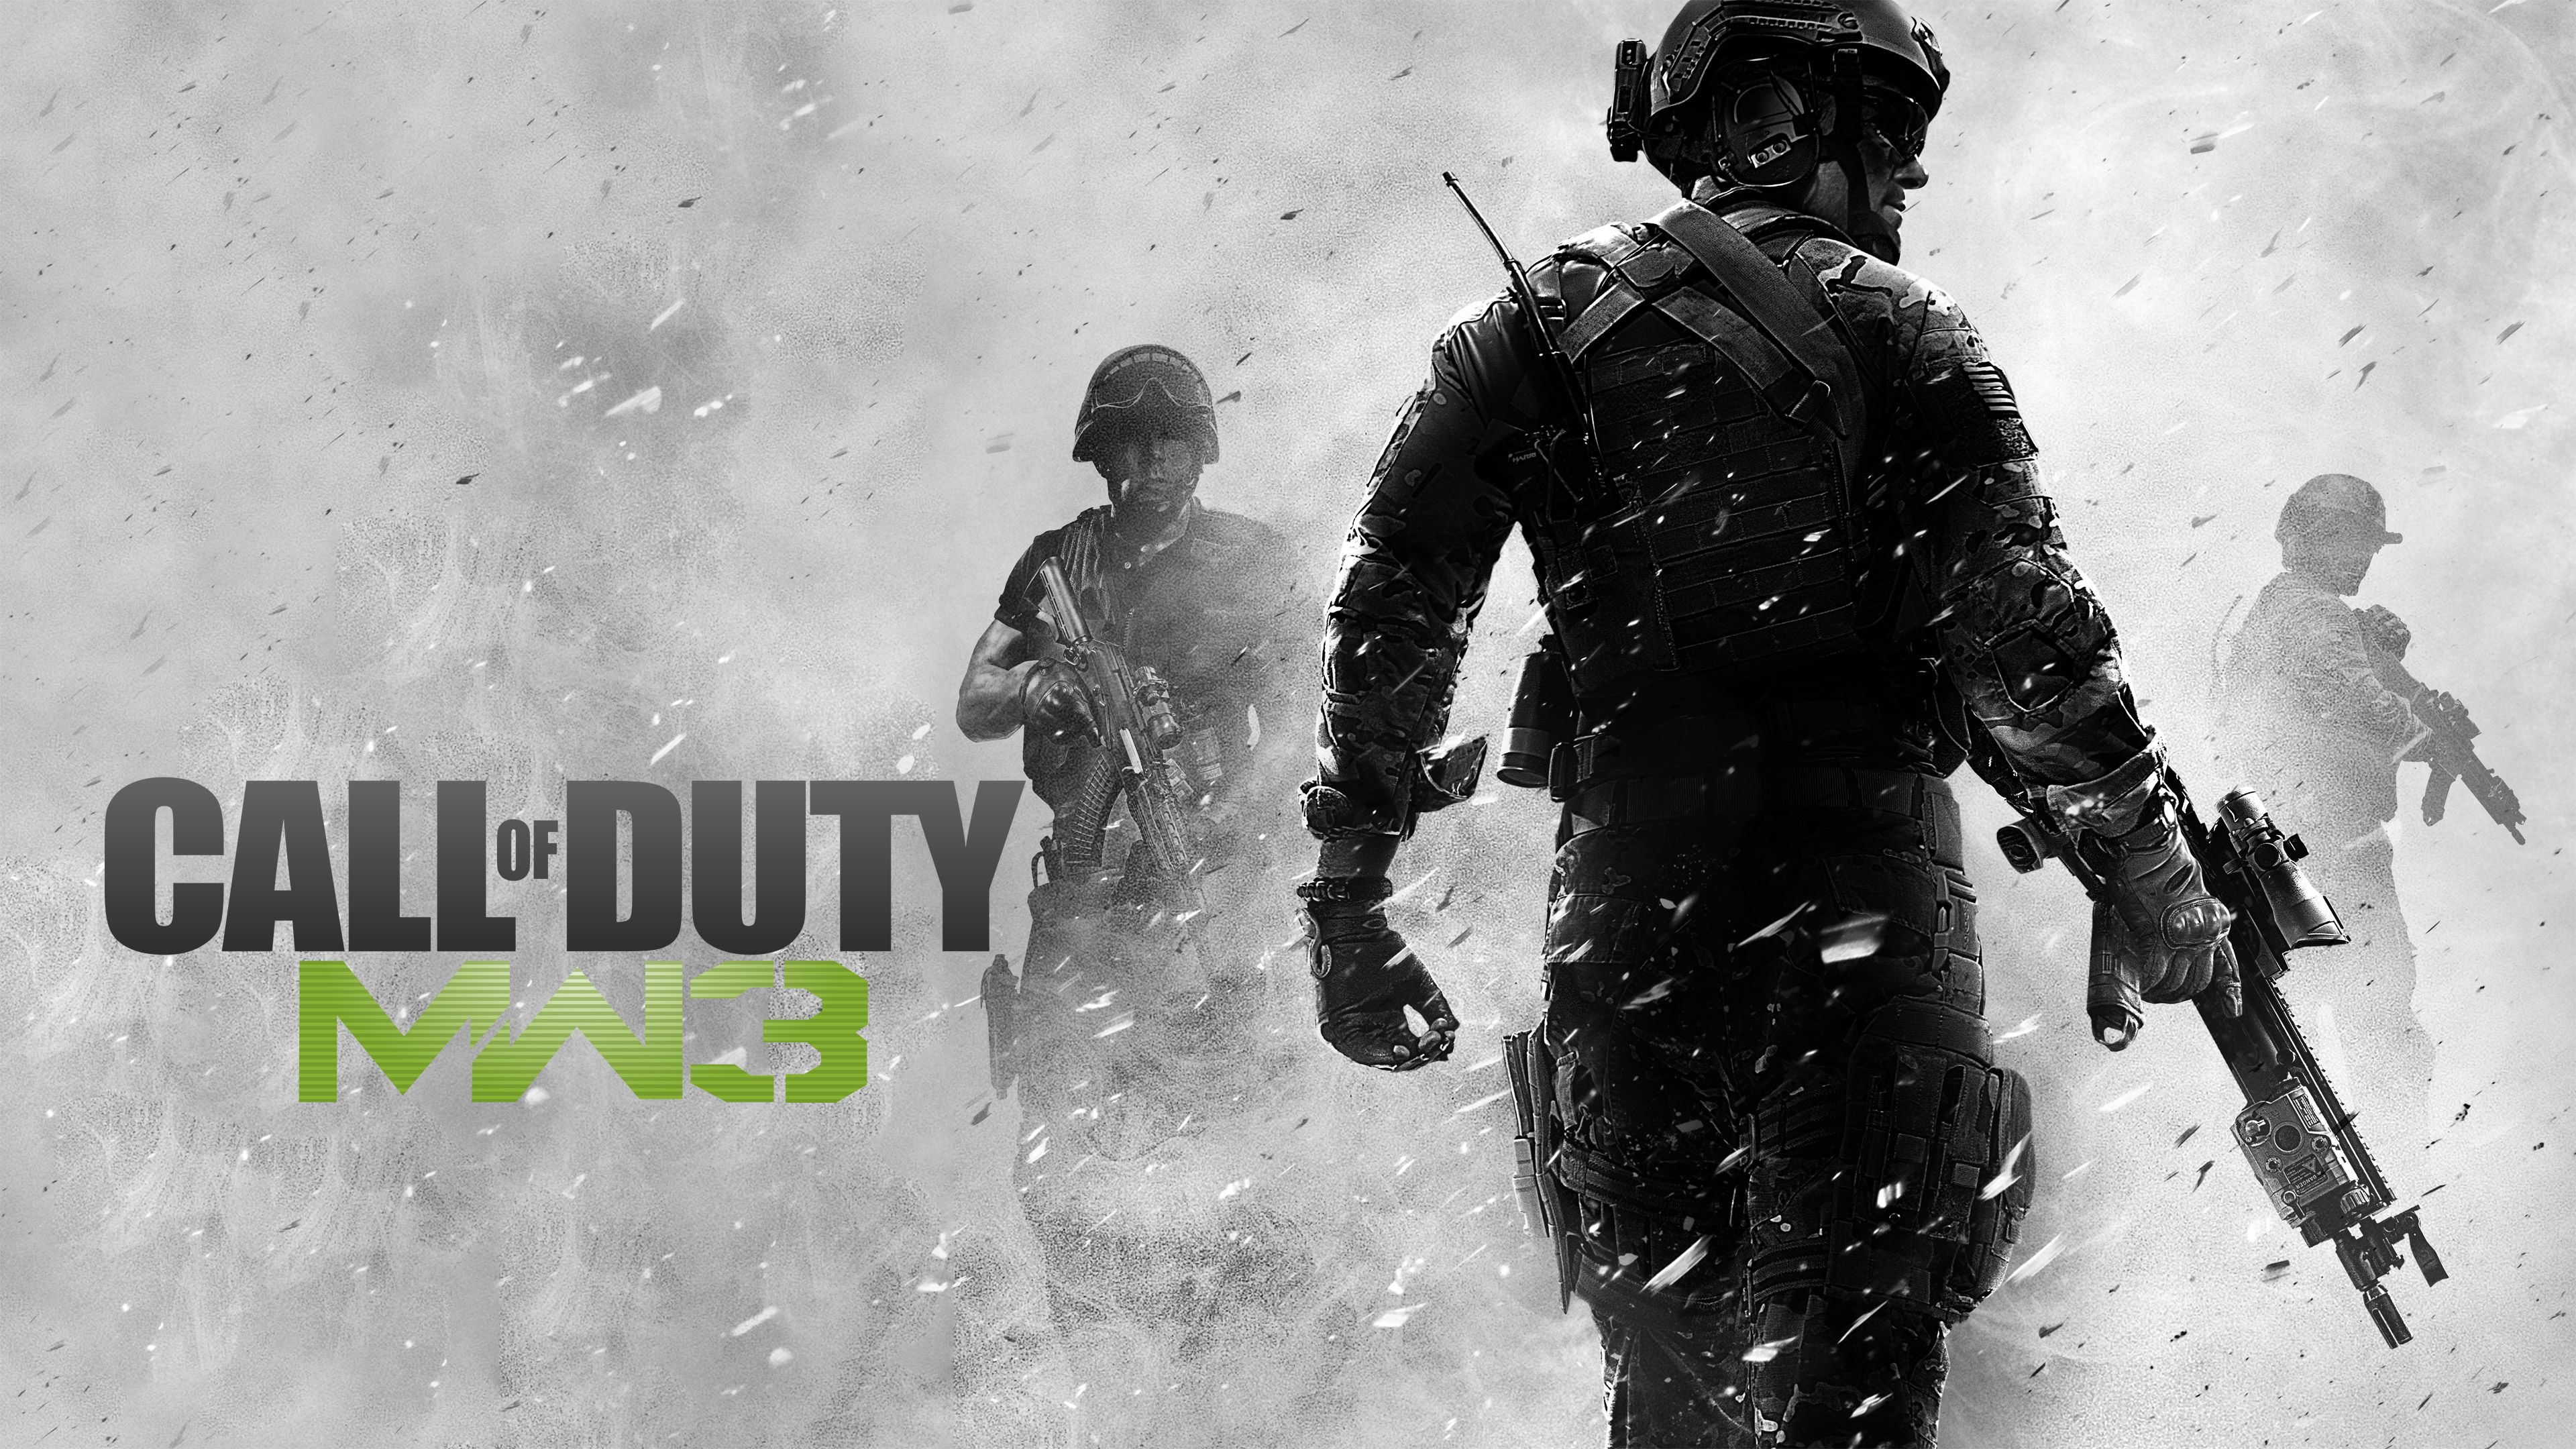 Call Of Duty Mw3 Wallpapers Wallpaper Cave